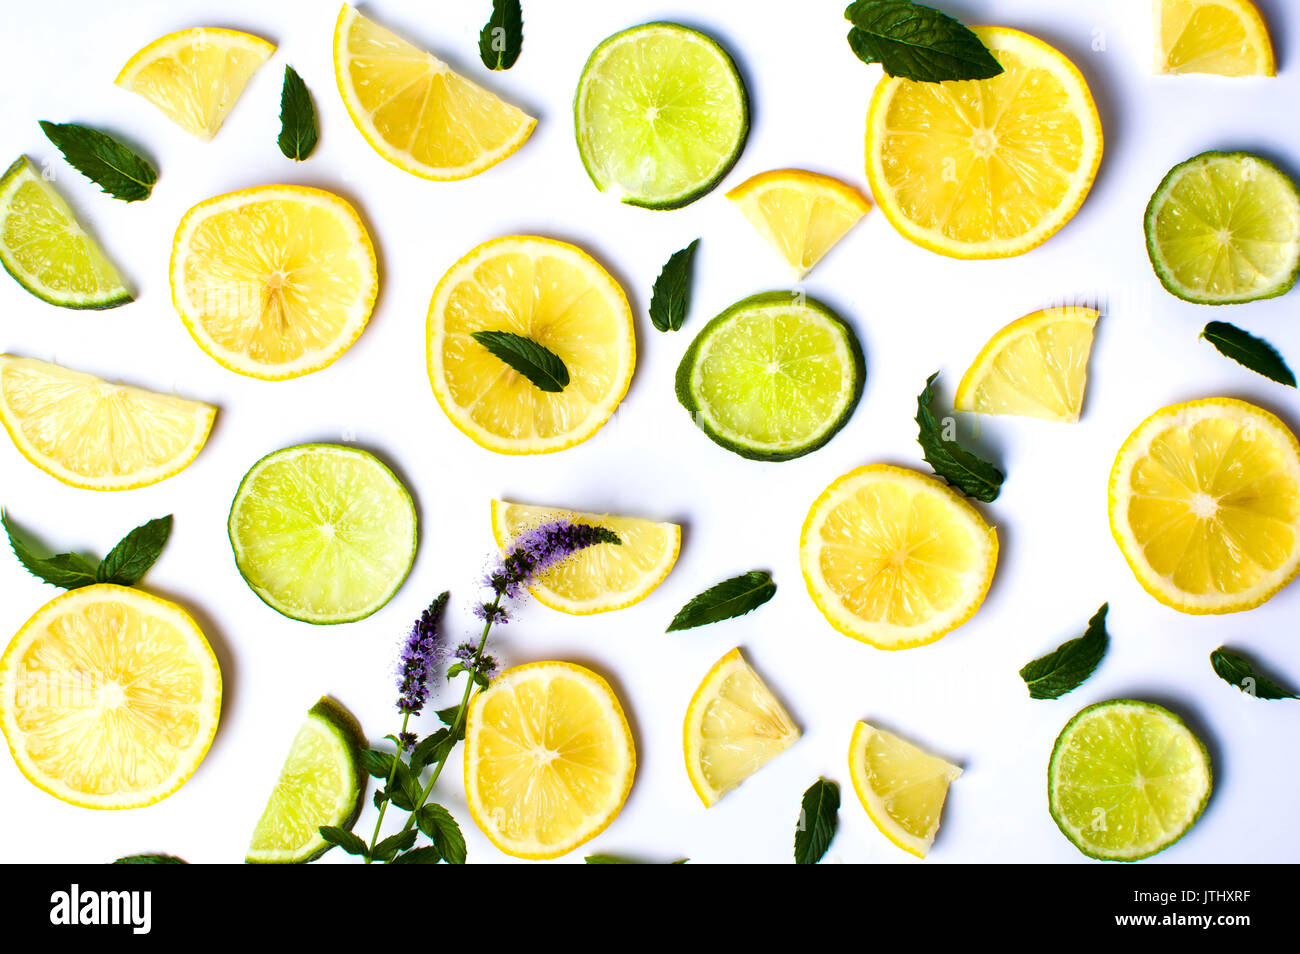 Lemon and lime slices with mint leaves on white background - Stock Image